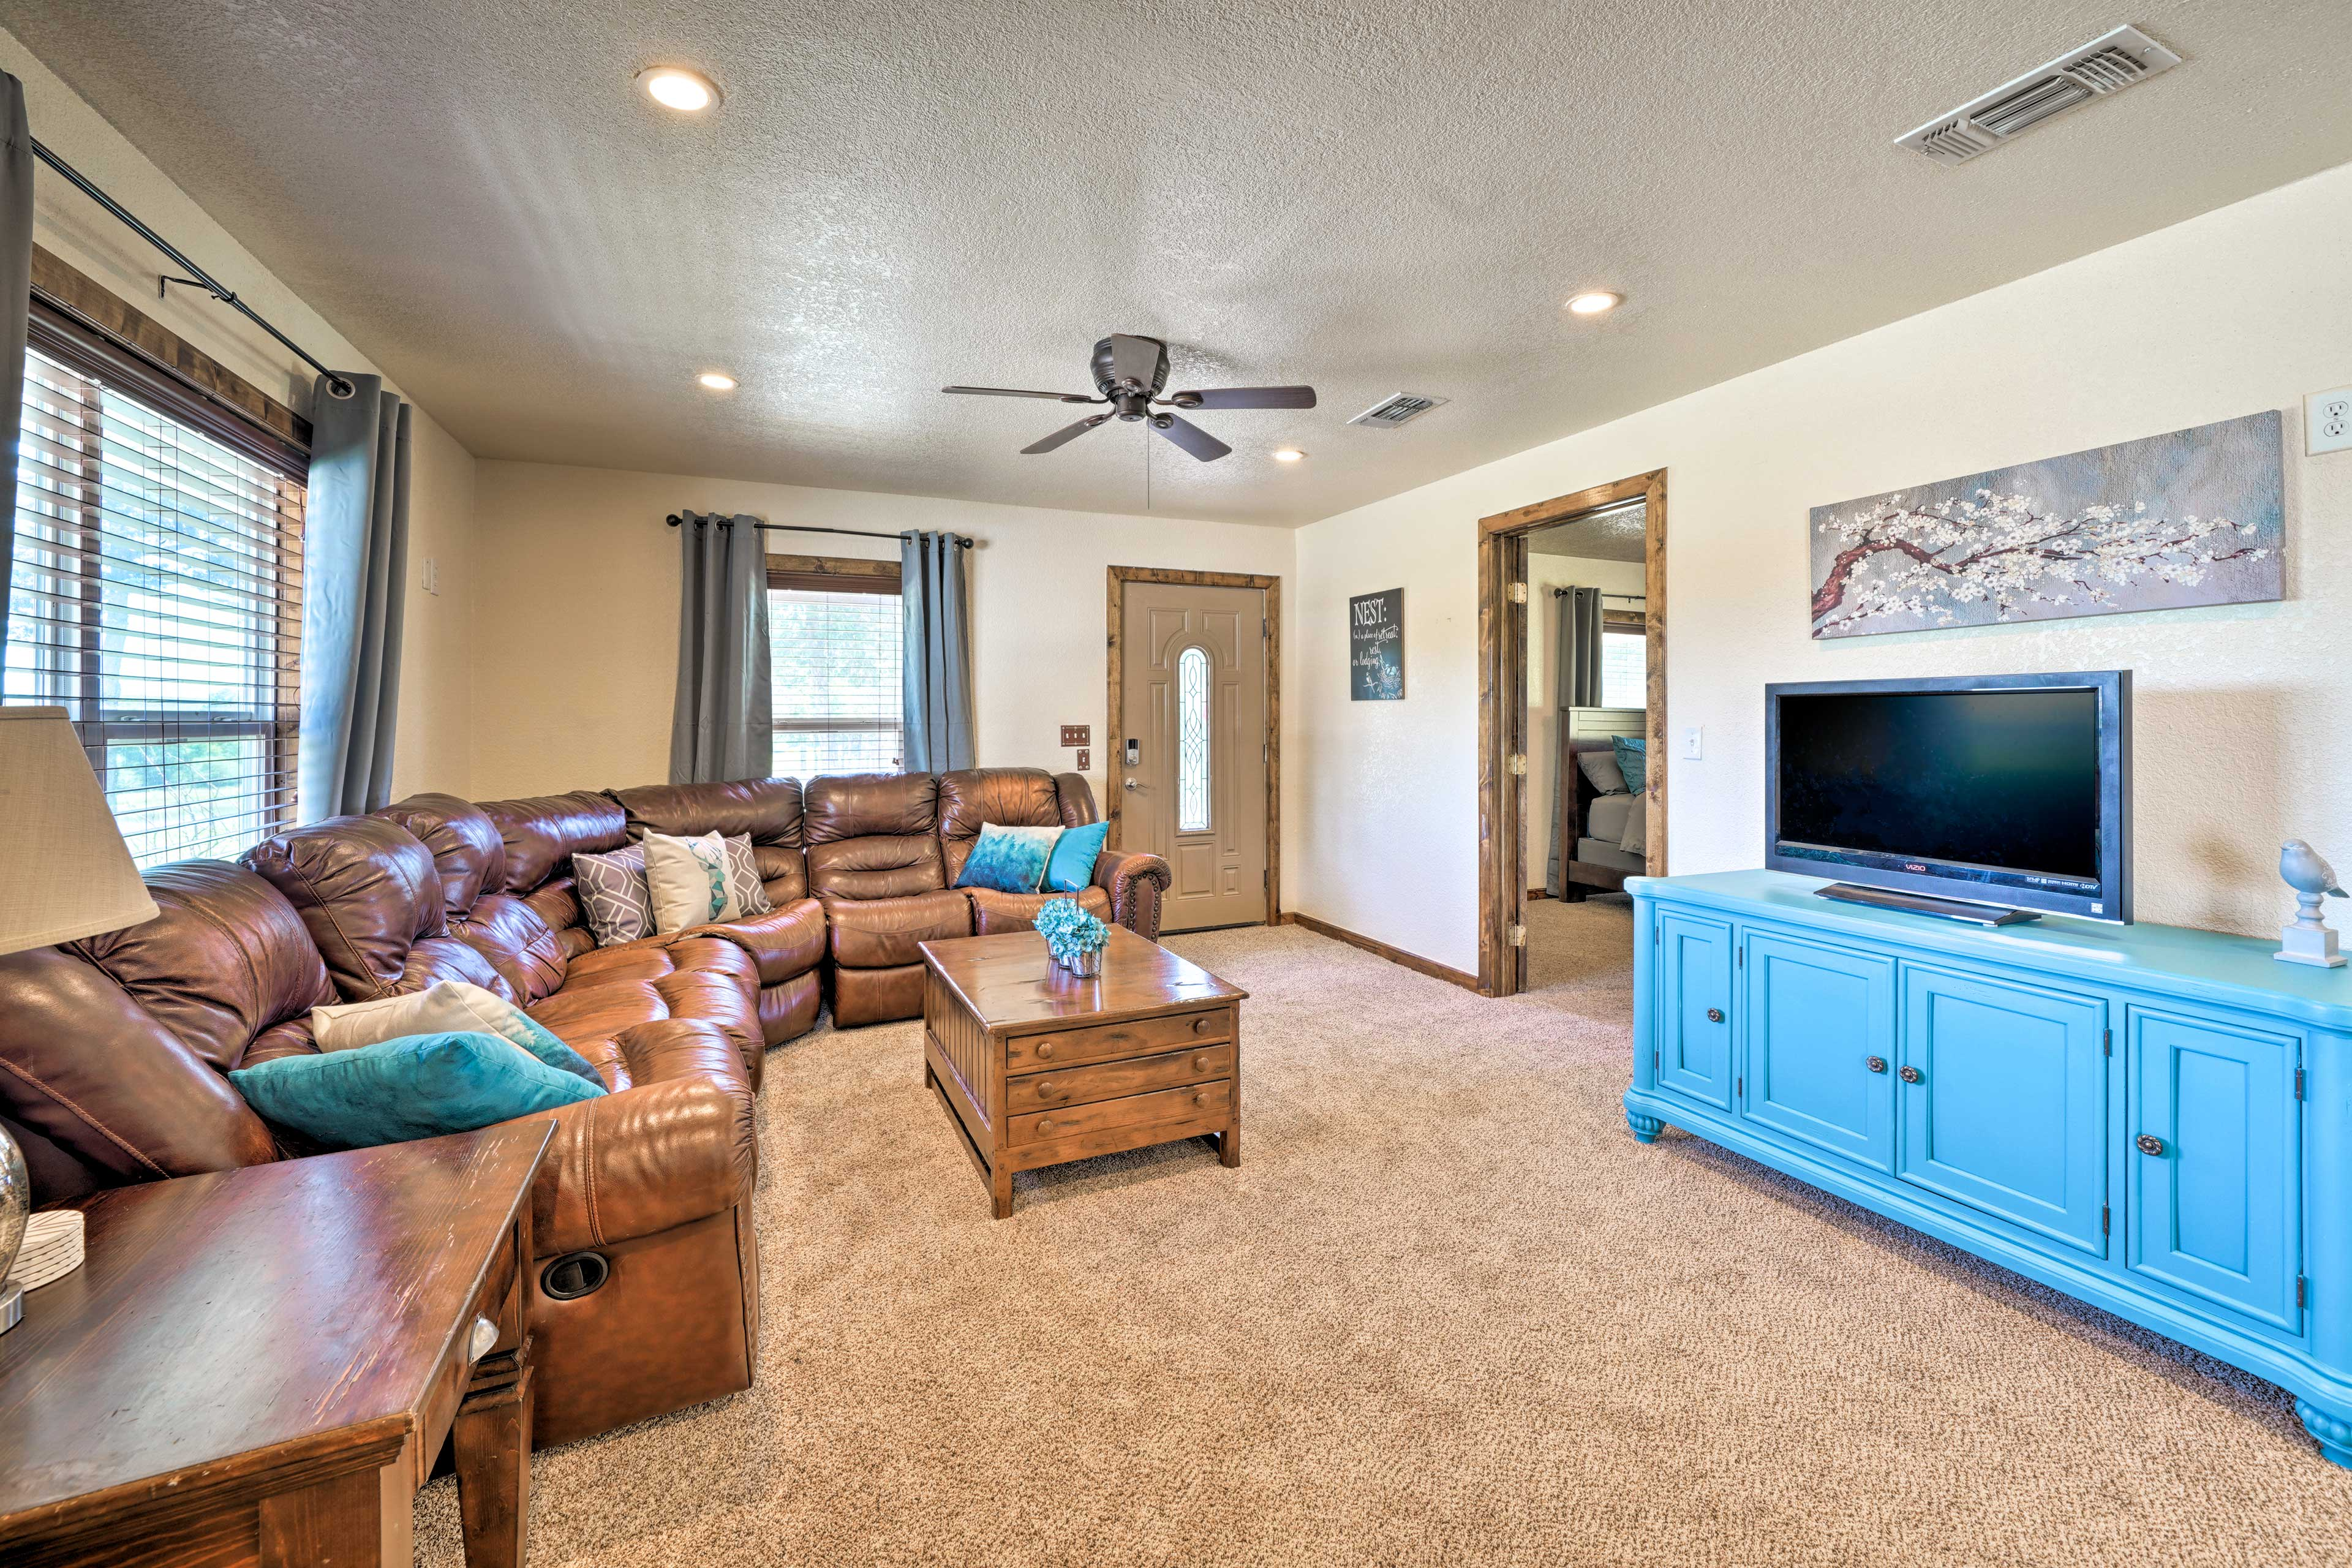 The comfortable interior has 2 bedrooms and 2 baths to sleep 6 guests.